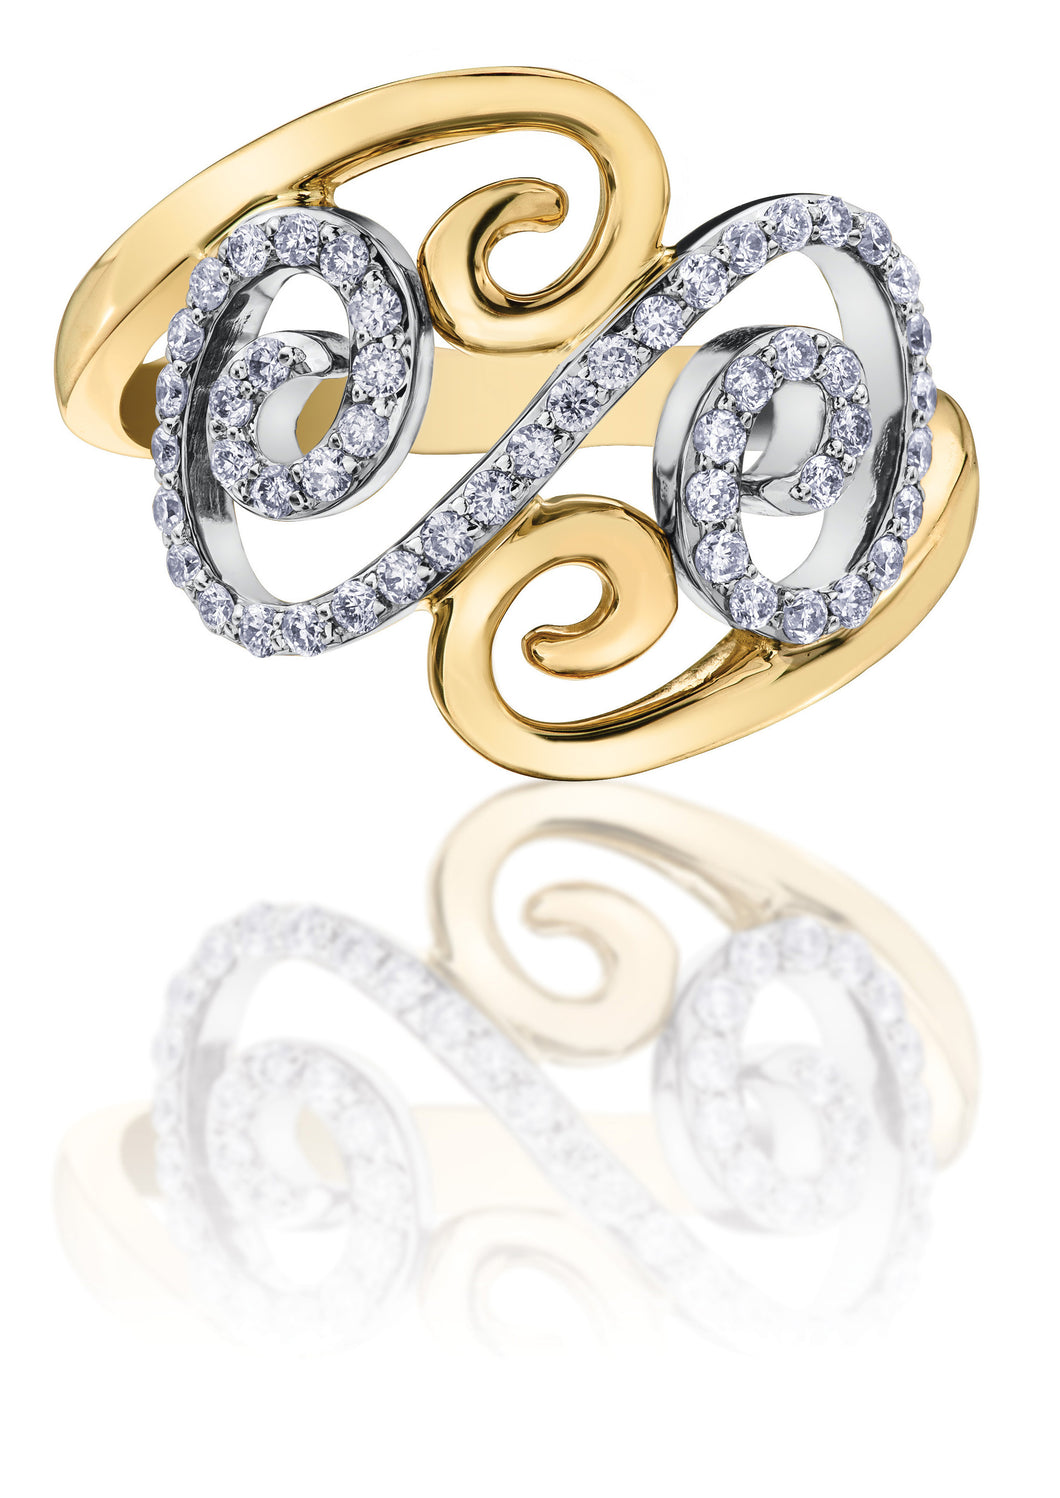 10Kt Ladies White and Yellow Gold with Diamonds Swirl Ring